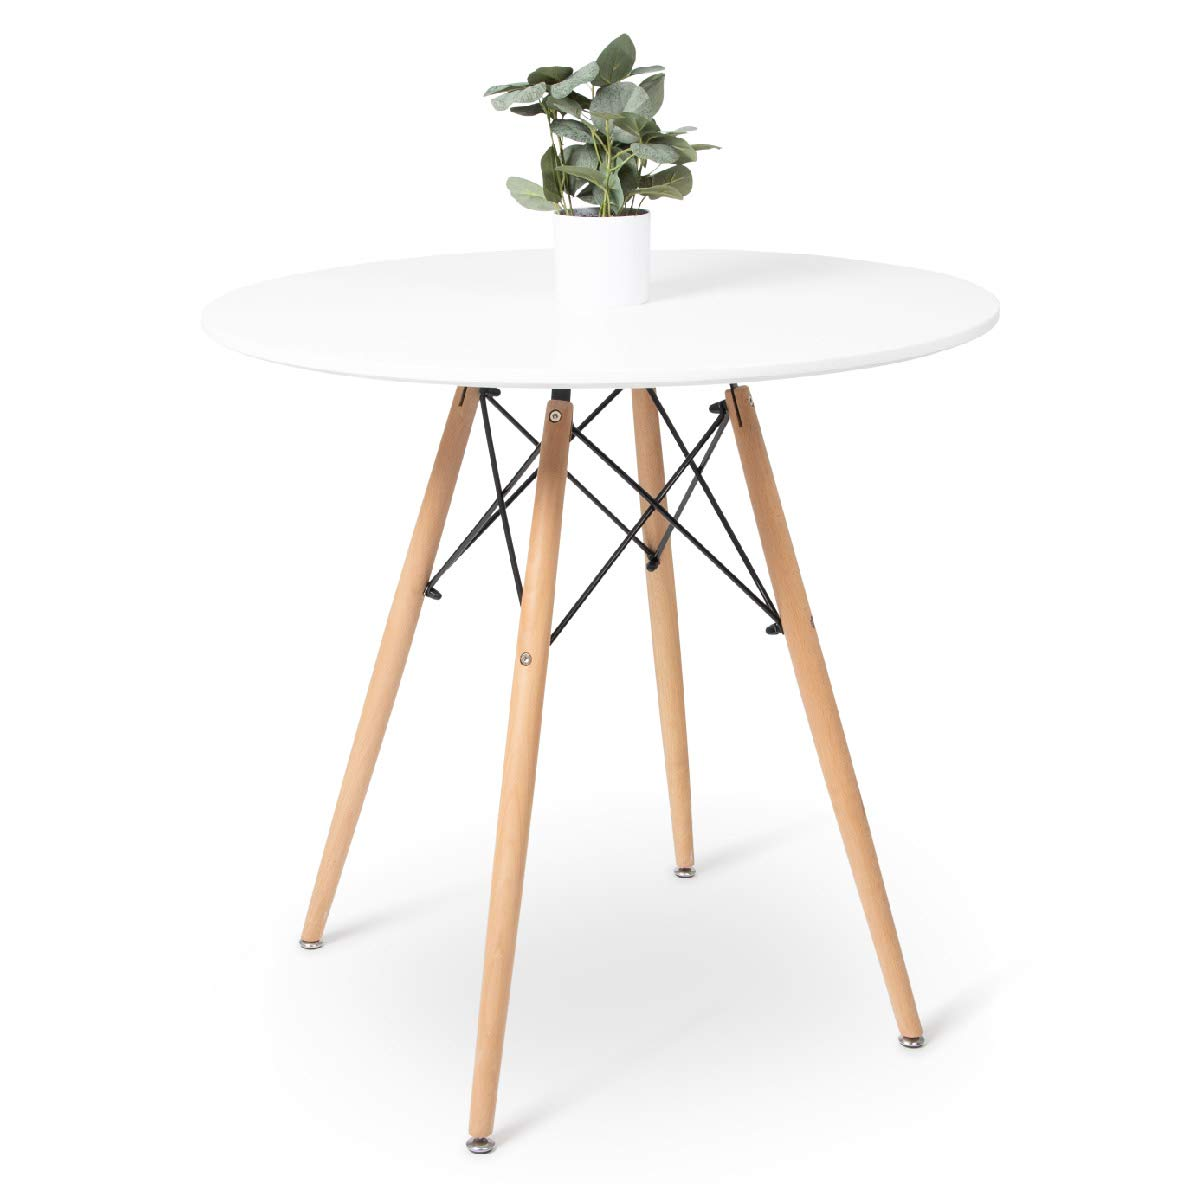 Milliard Dining Table – Small, Round, Dining Room Table   for 9 to ...